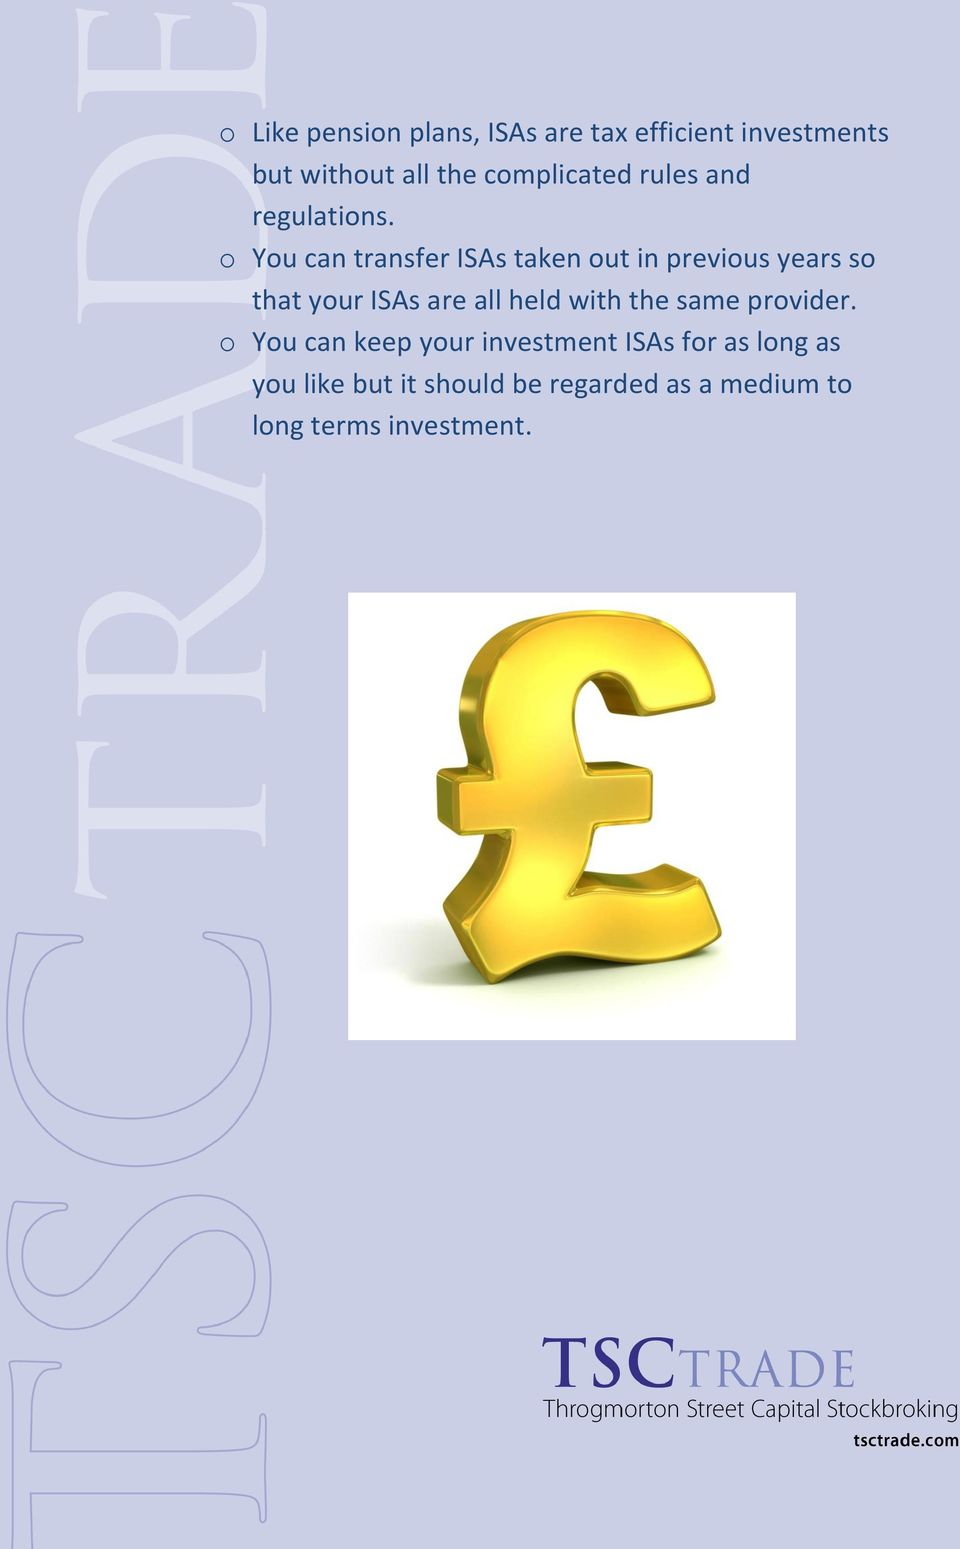 o You can transfer ISAs taken out in previous years so that your ISAs are all held